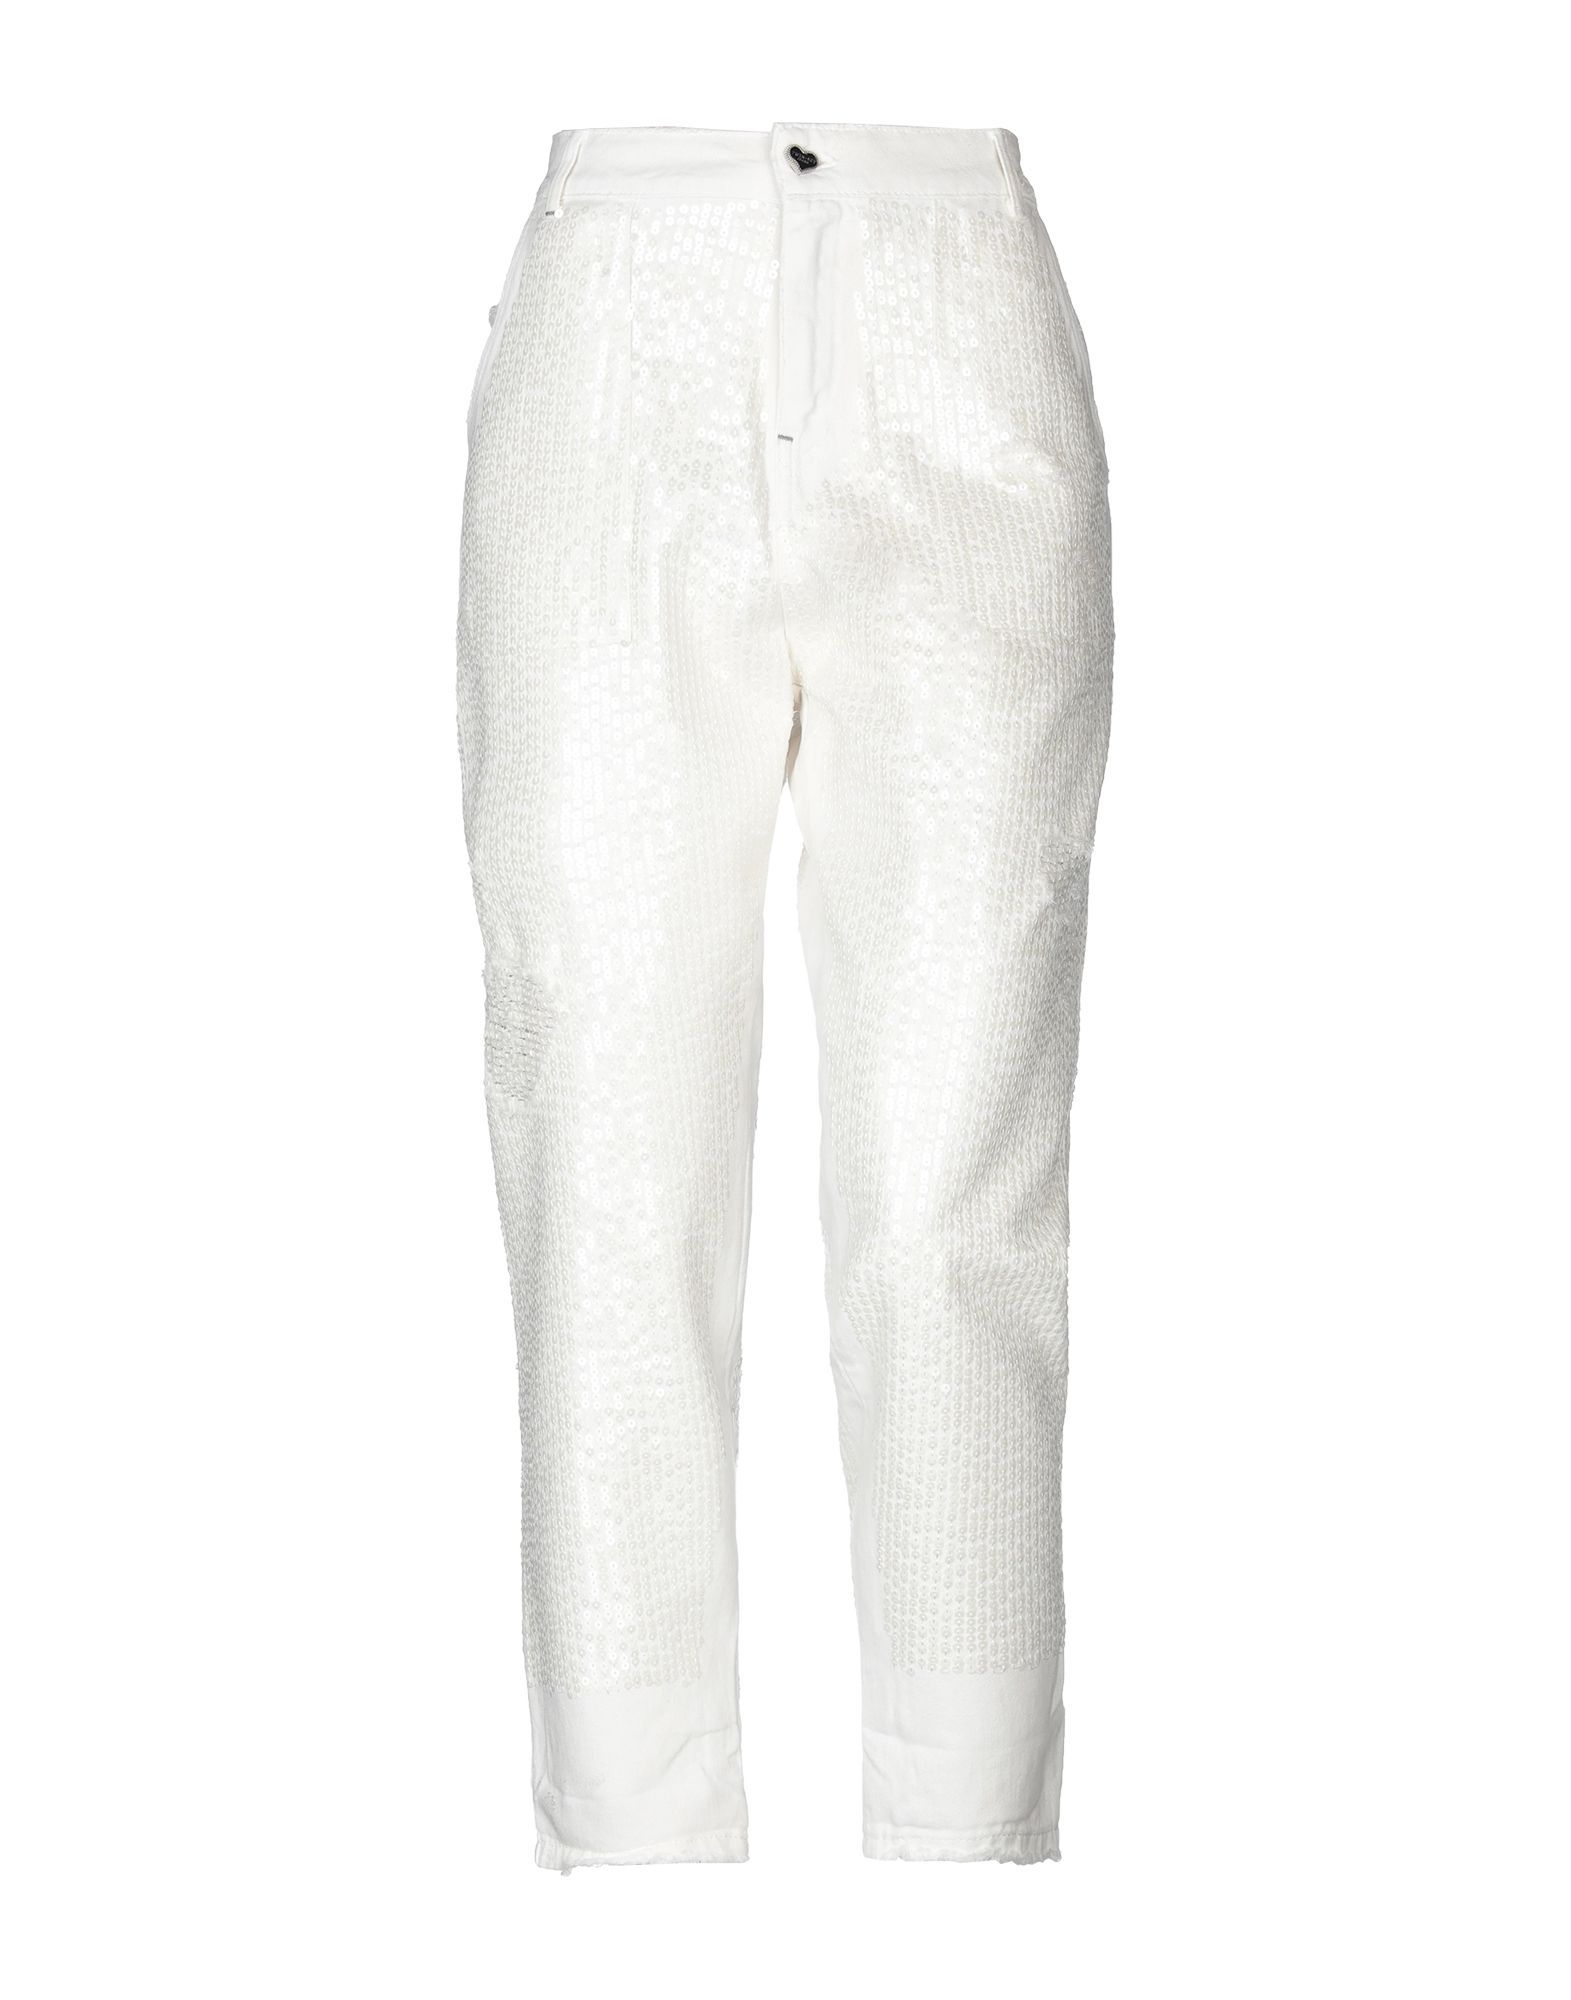 Twinset Ivory Cotton Jeans